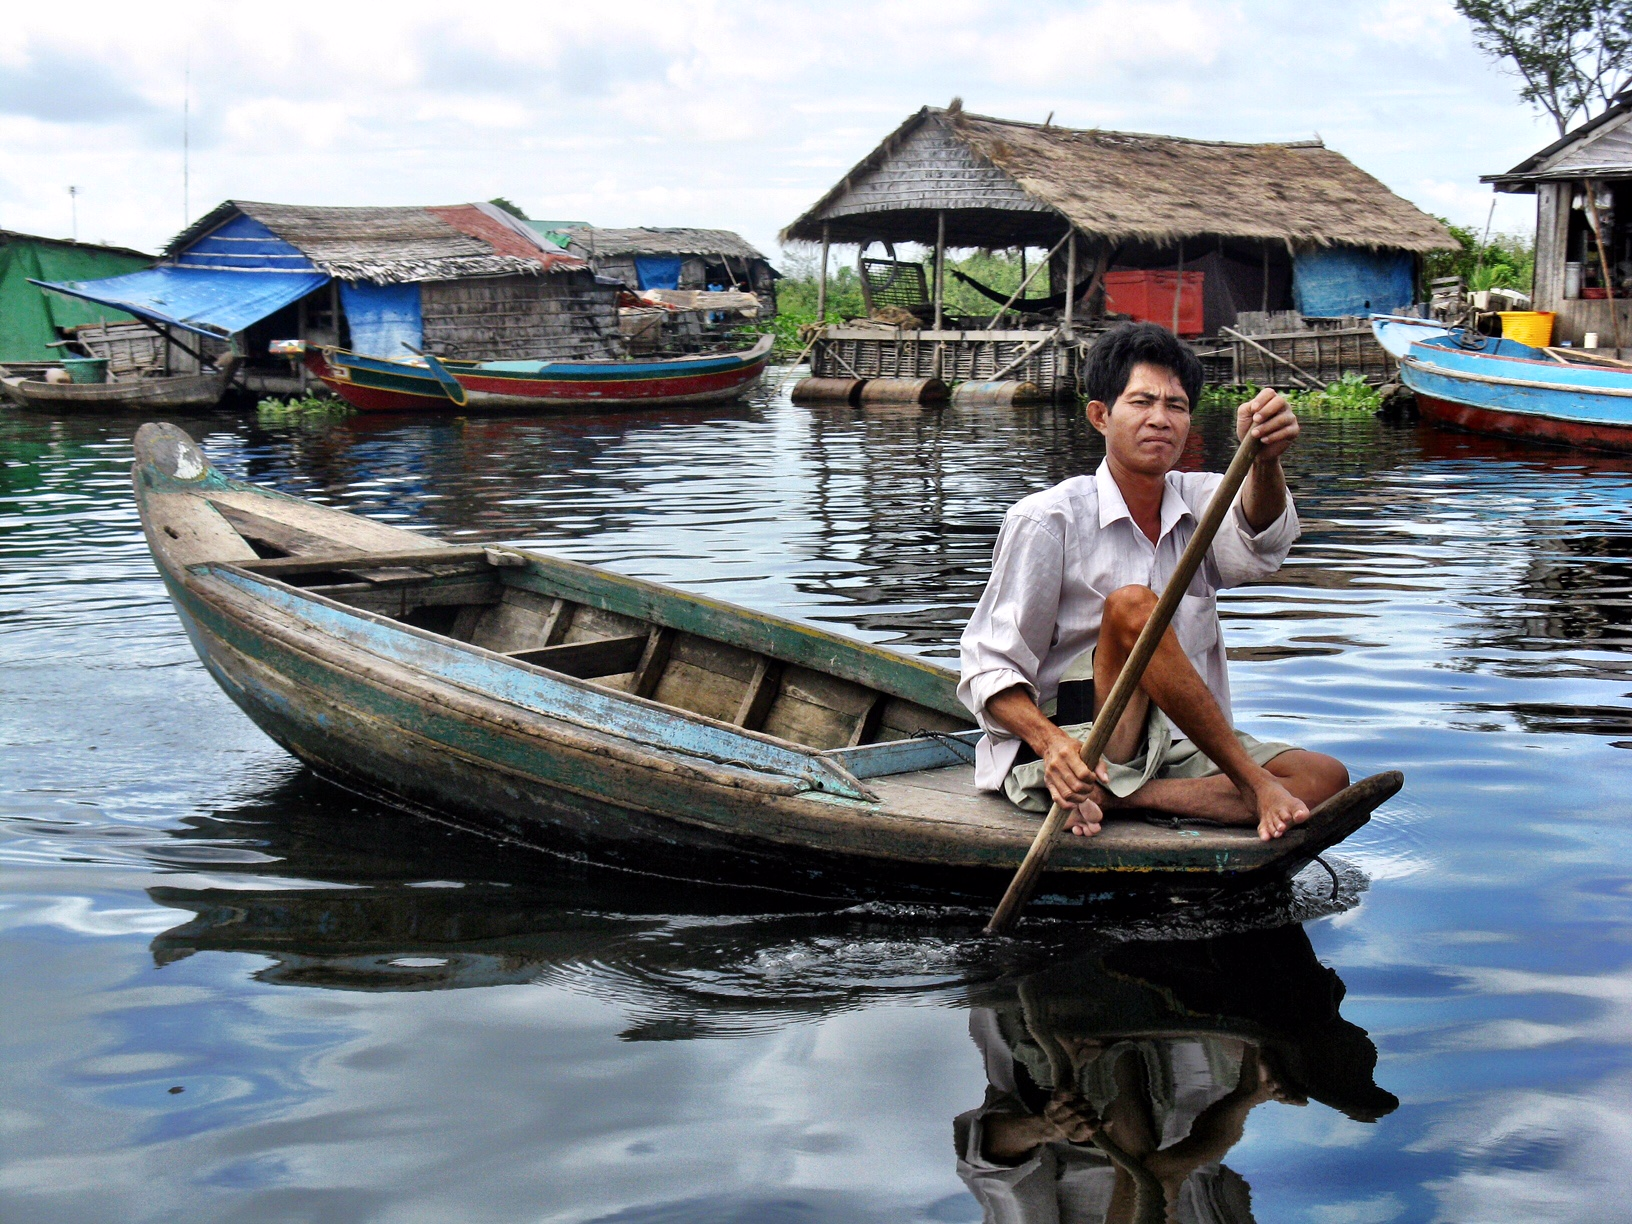 Getting into a boat every time you want to go anywhere is the way of life in Kompong Khleang